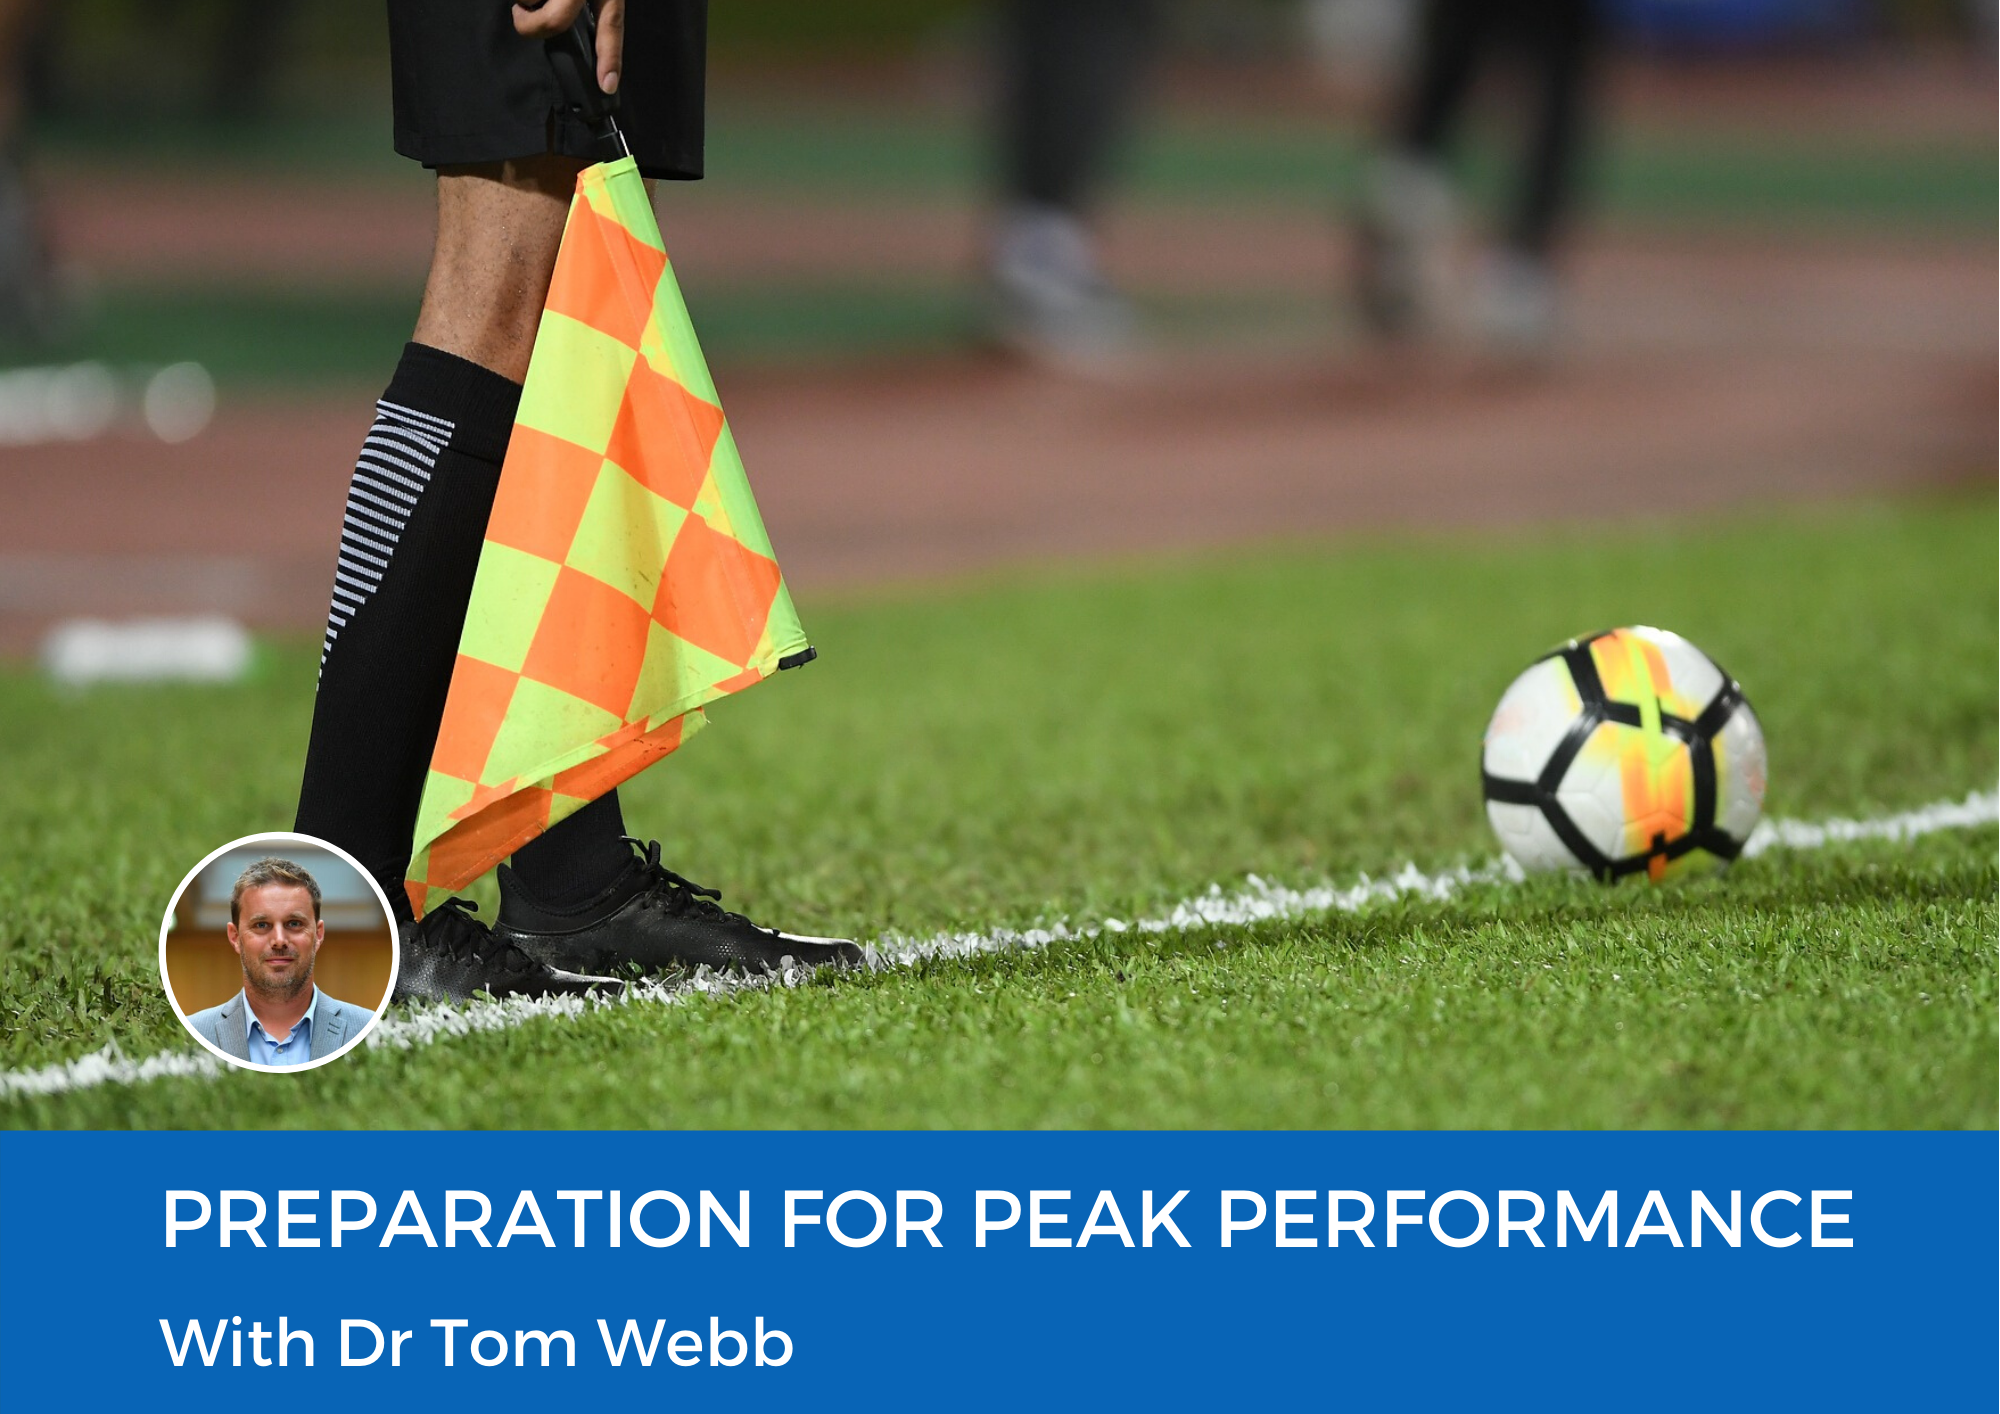 Preparation for Peak Performance